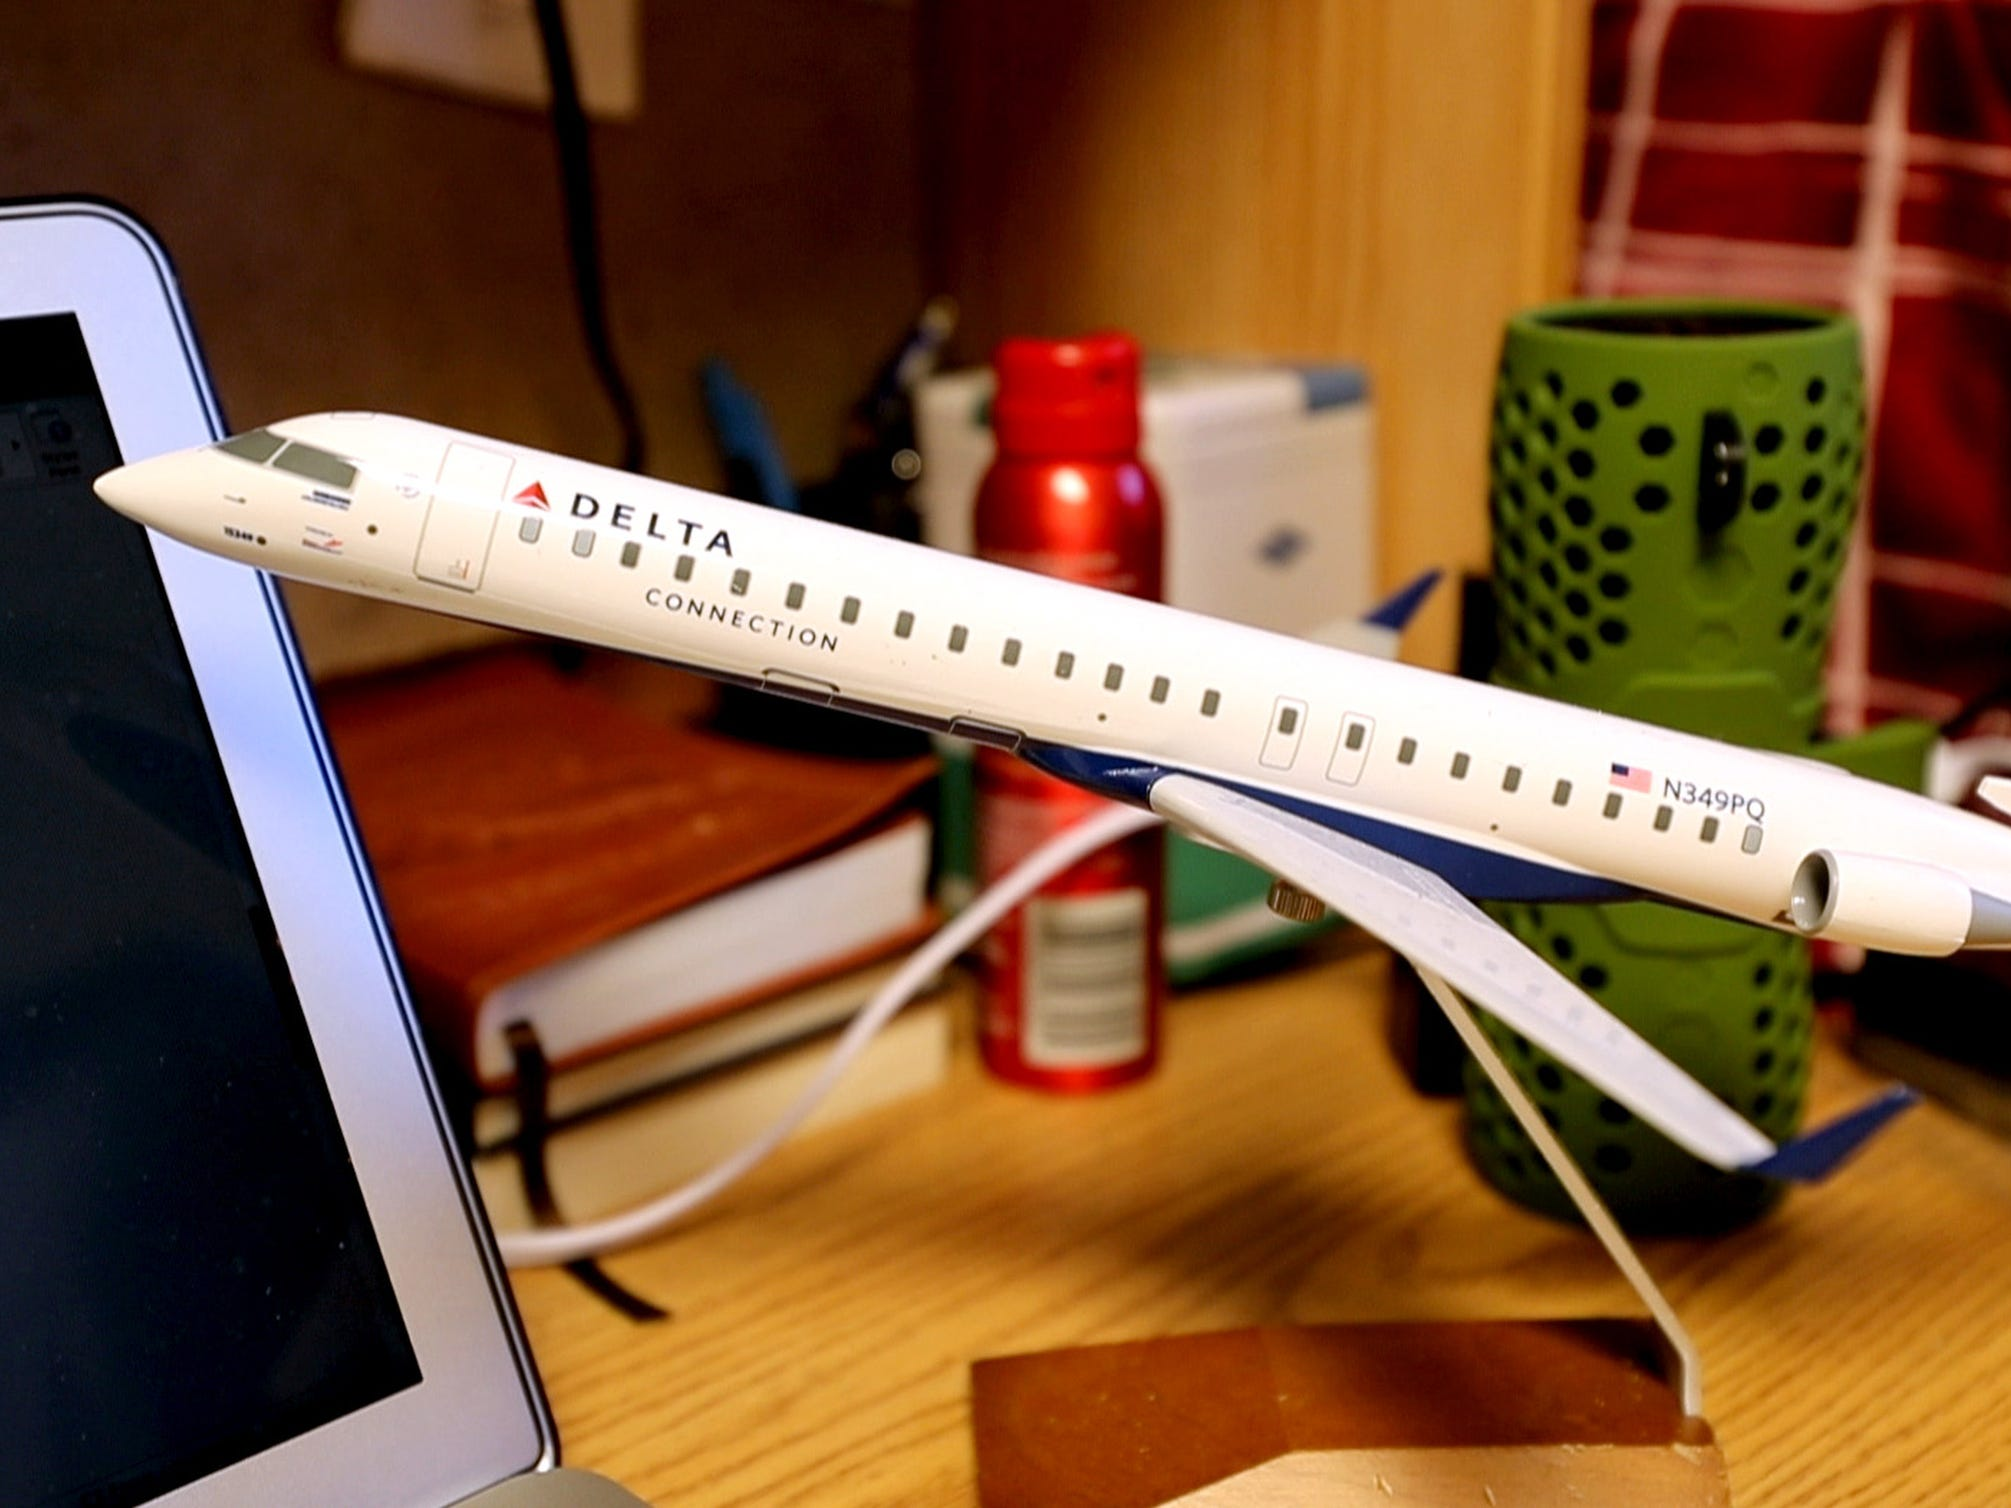 Despite changing his major from aviation Isaac Plata still has a plane replica in his dorm at MTSU.